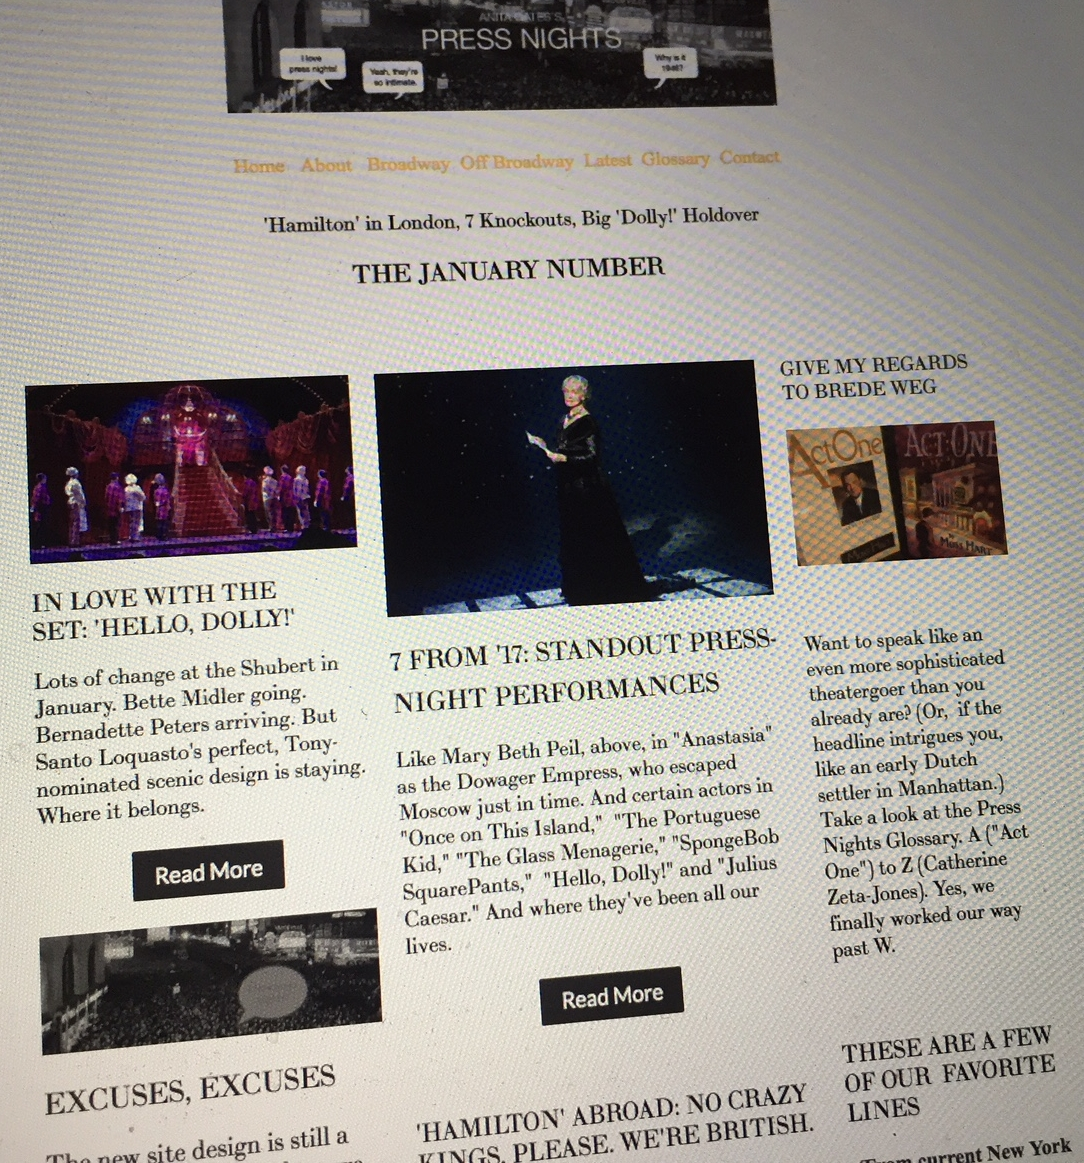 The Home Page - THE JANUARY 2018 PRESS NIGHTS  home page, including posts on